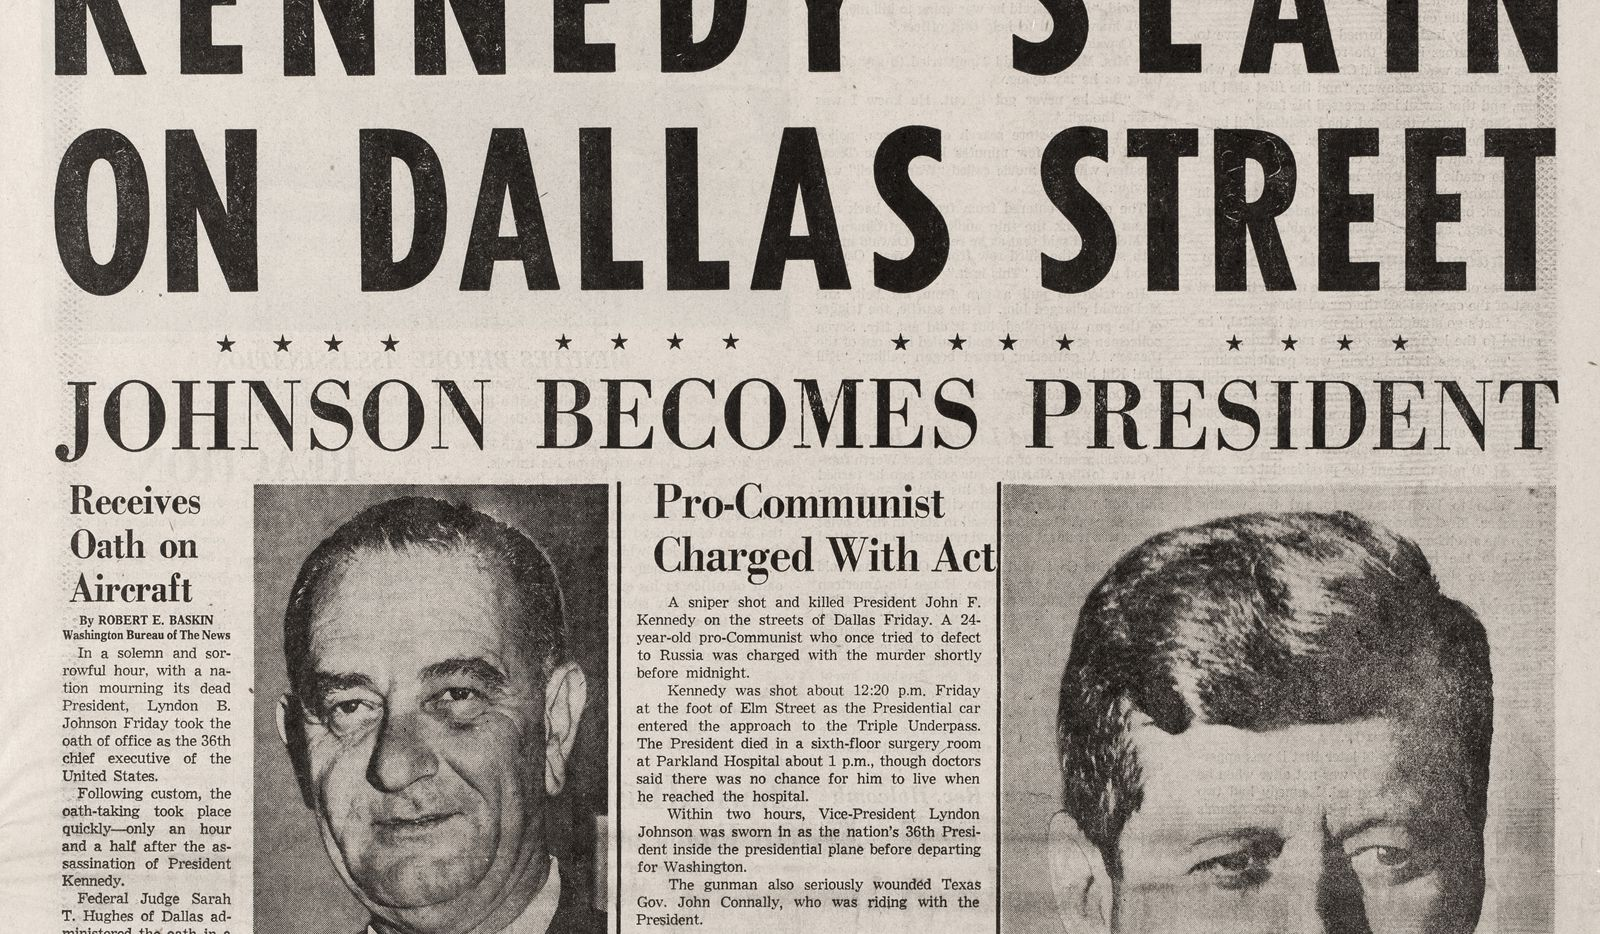 Copy photos of the November 23, 1963 issue of The Dallas Morning News, photographed March 6, 2013.  (Evans Caglage/The Dallas Morning News)   -- JFK, President John F. Kennedy, Pres. Kennedy, newspaper, DMN, historic paper  -- Kennedy Slain on Dallas Street -- JFK shot , assassination, assassinated front page, page one, 1A, page 1, cover, kennedy shot